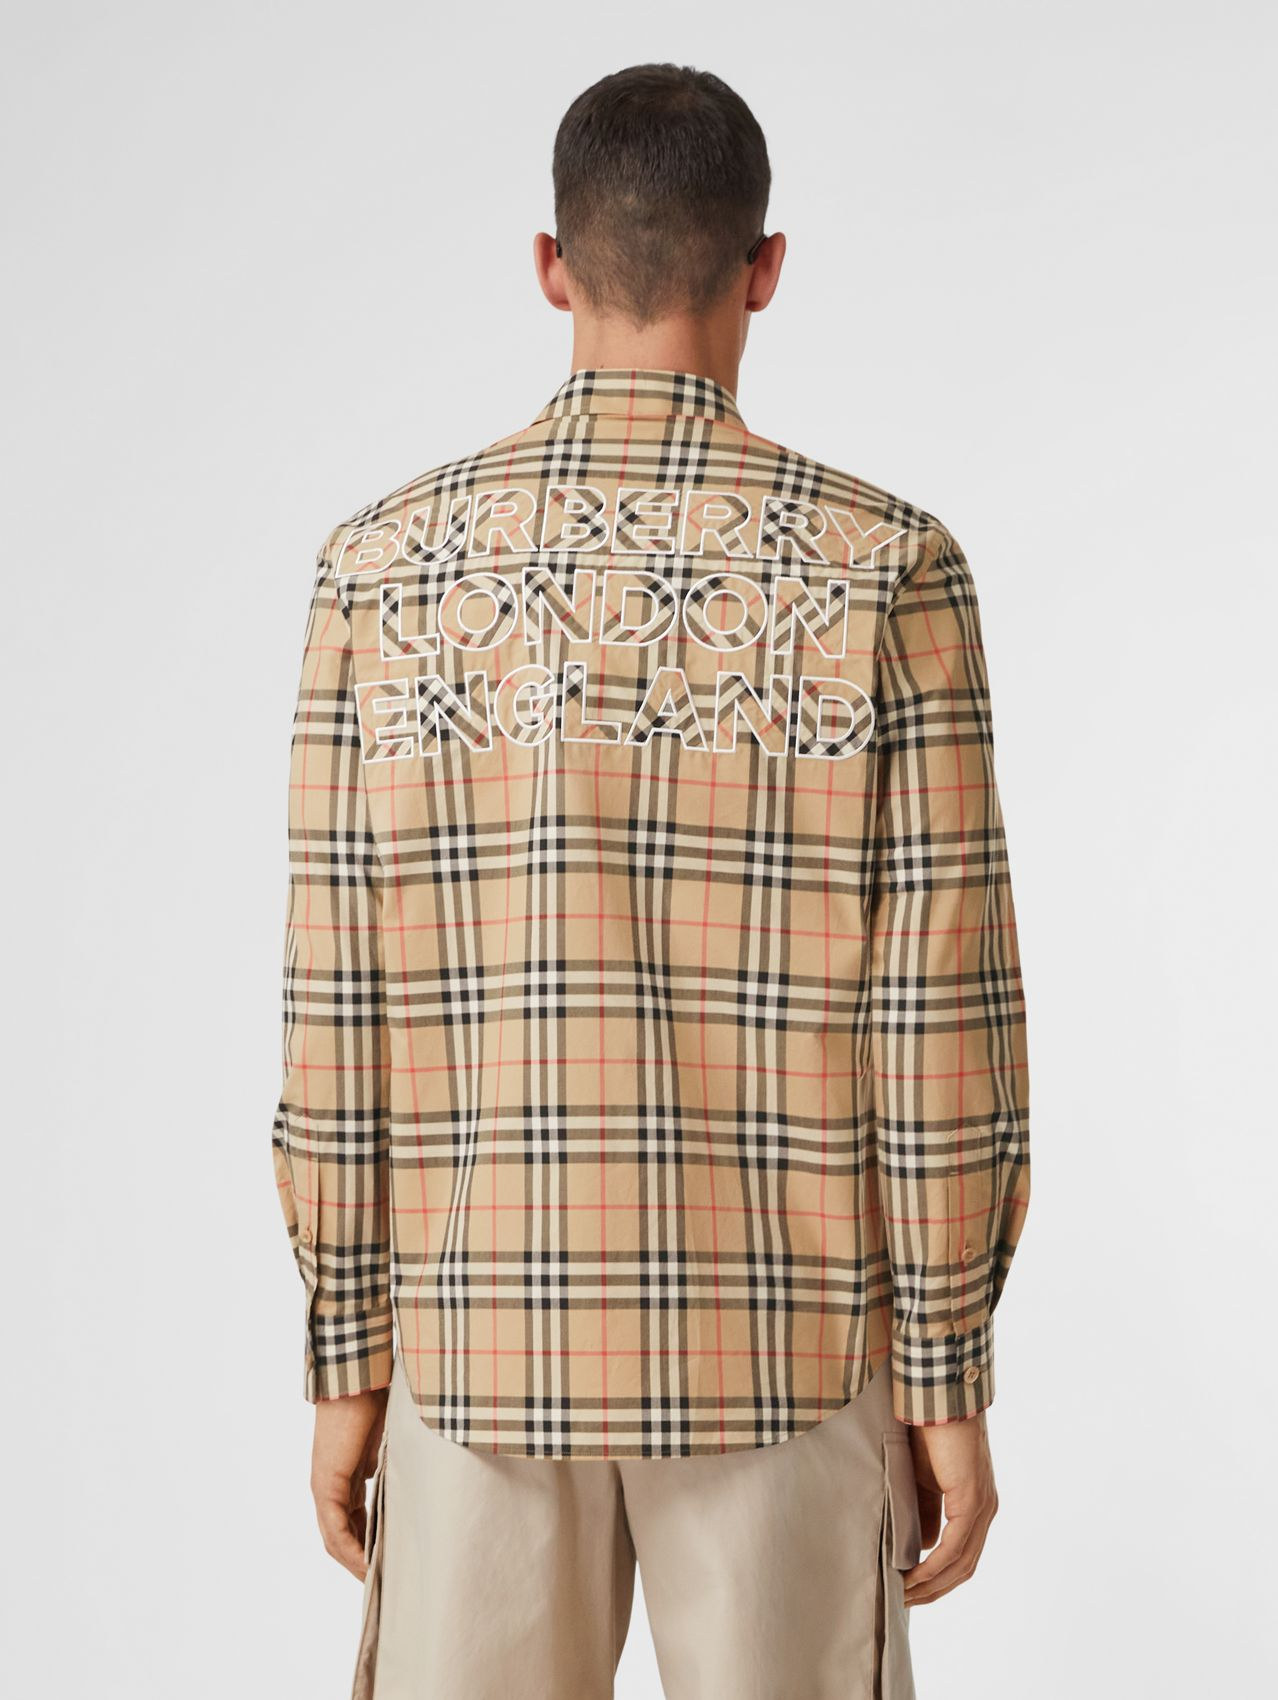 Logo Appliqué Vintage Check Cotton Shirt in Archive Beige